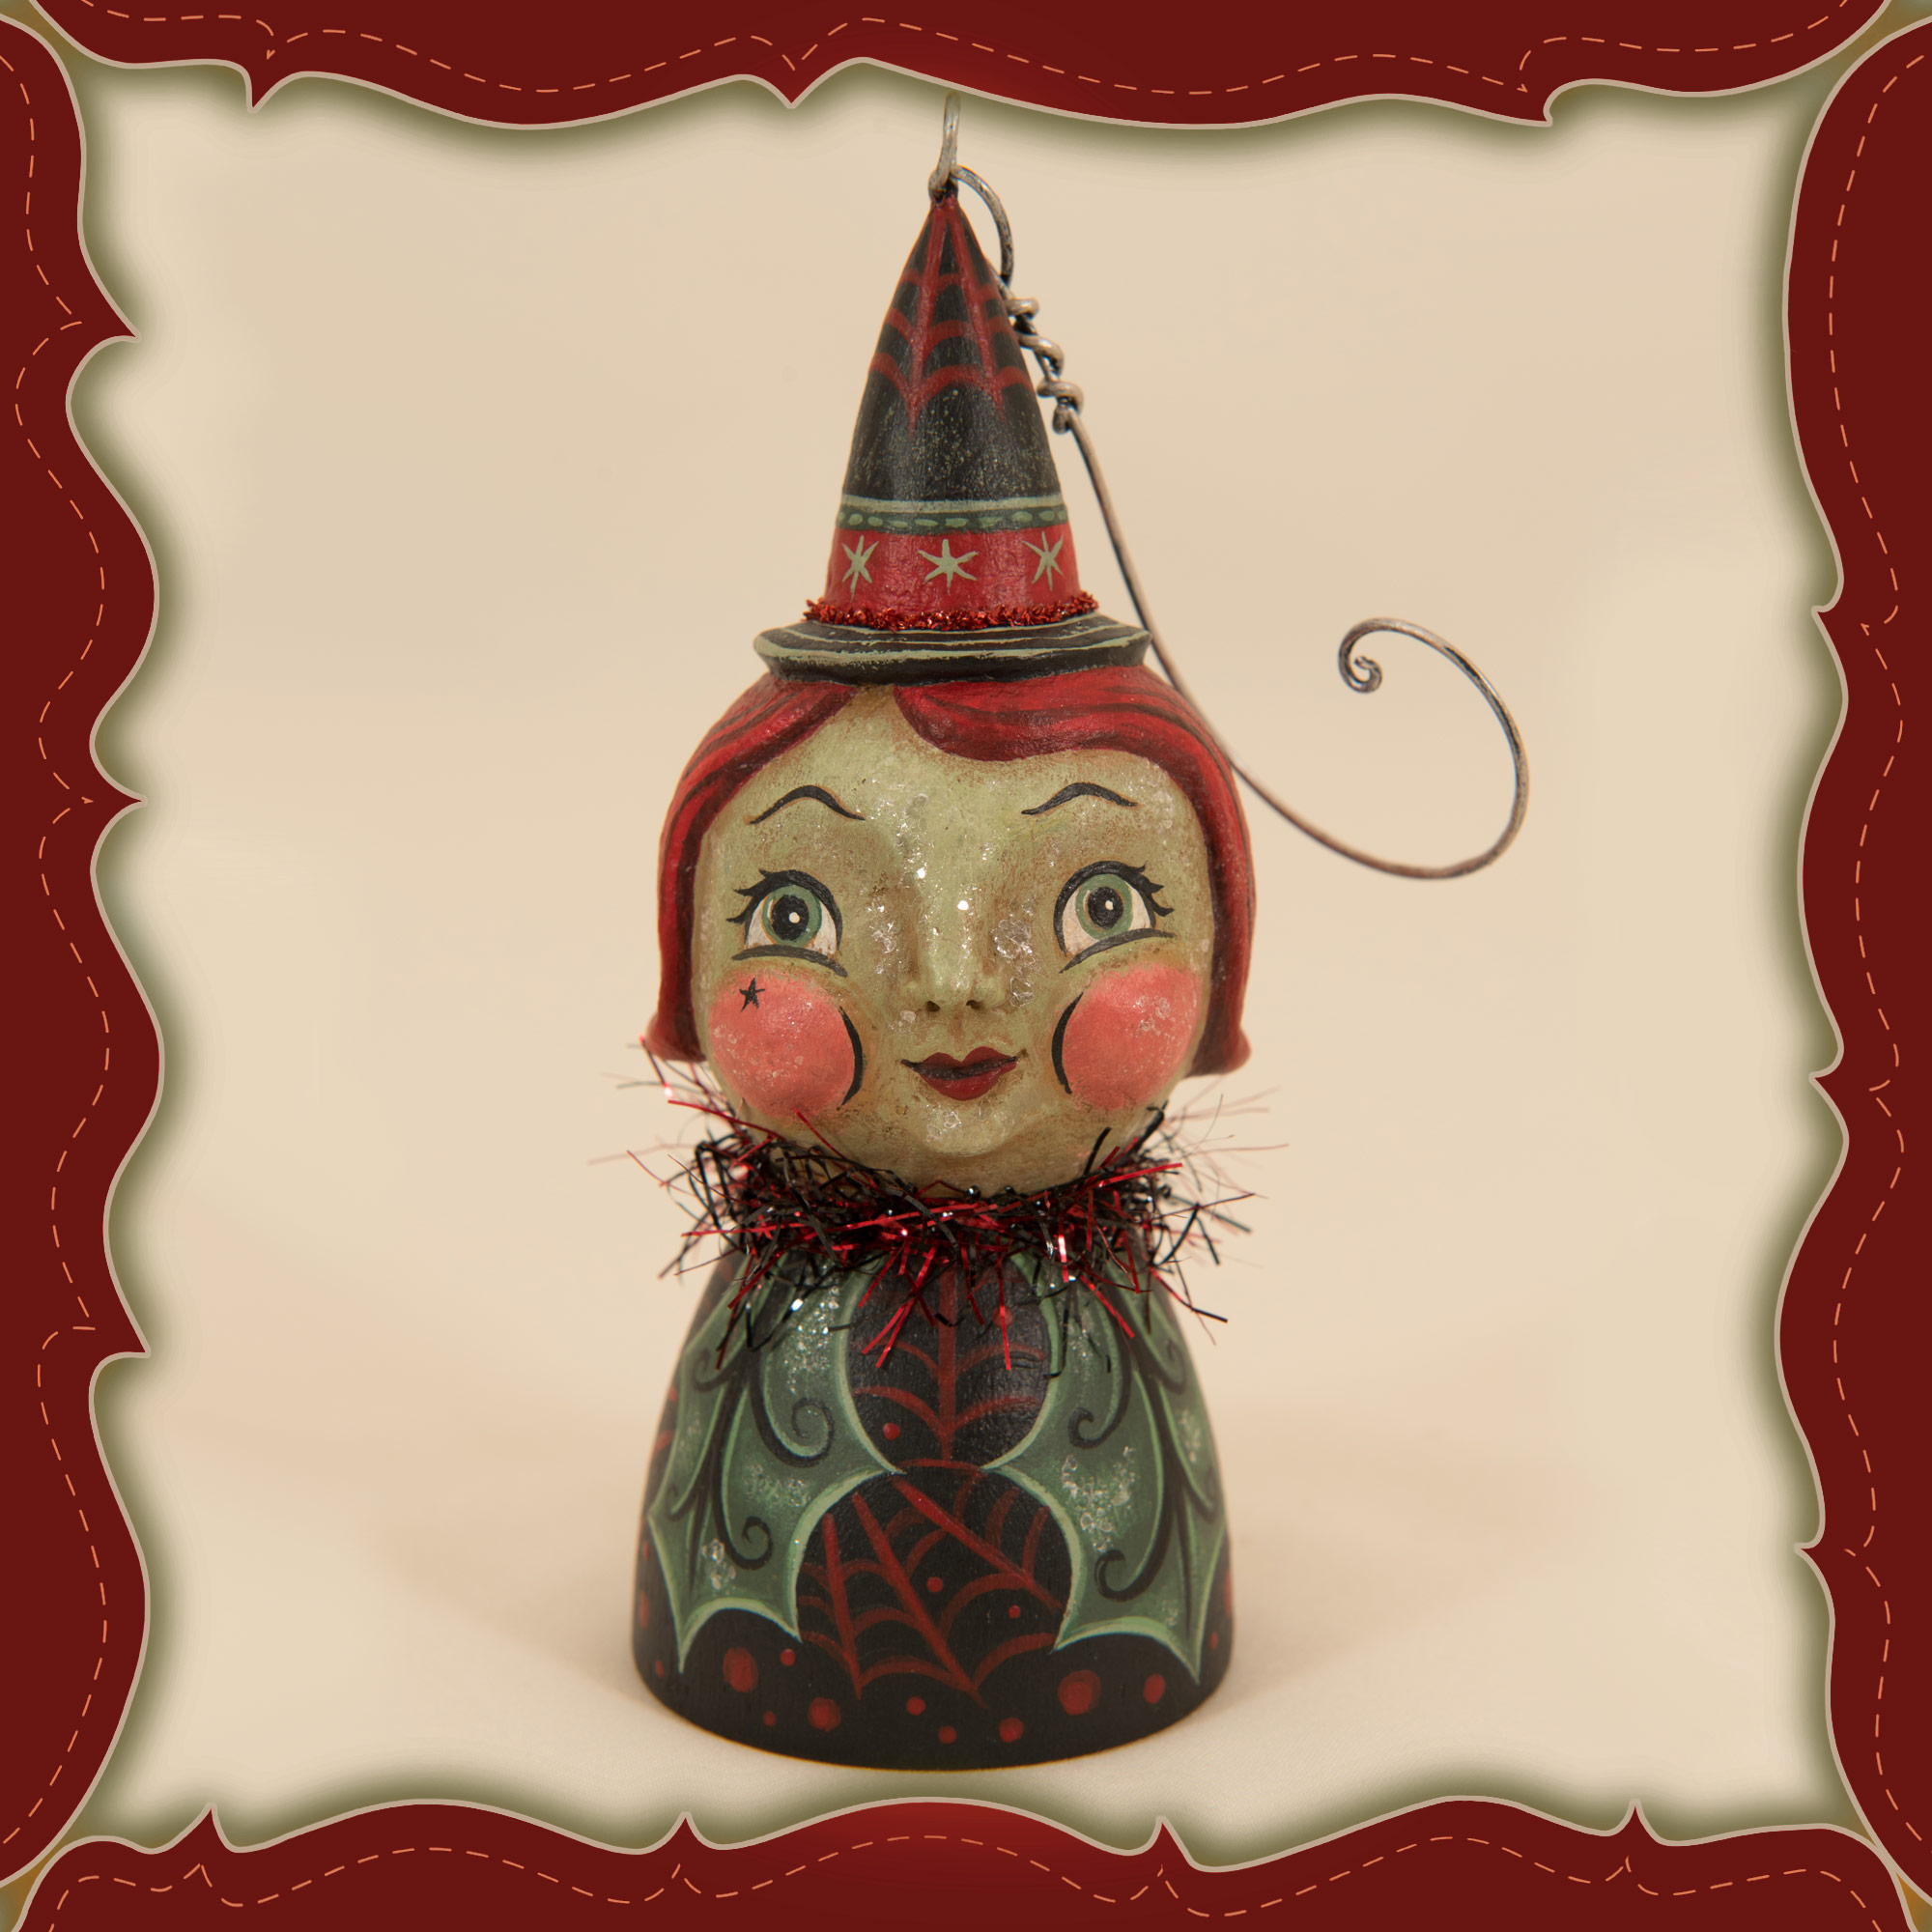 Holly-Witch-Bell-Ornament-Frame.jpg